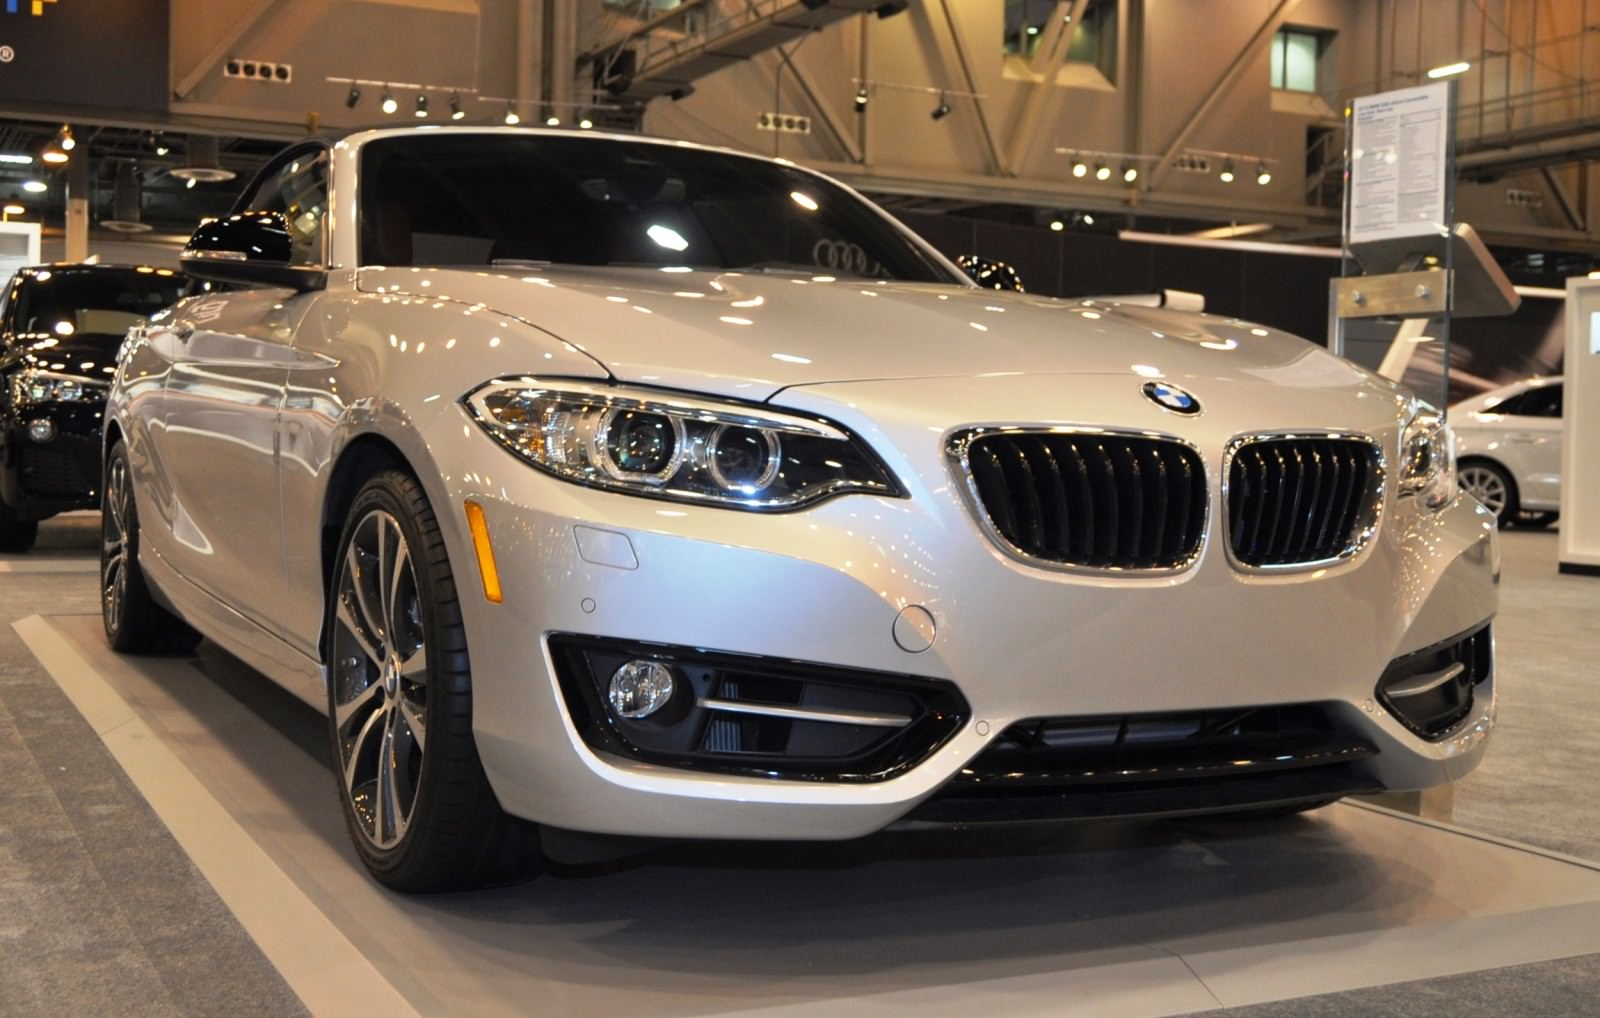 Houston Auto Show - 2015 BMW 228i xDrive Convertible in Luxury Trim 1